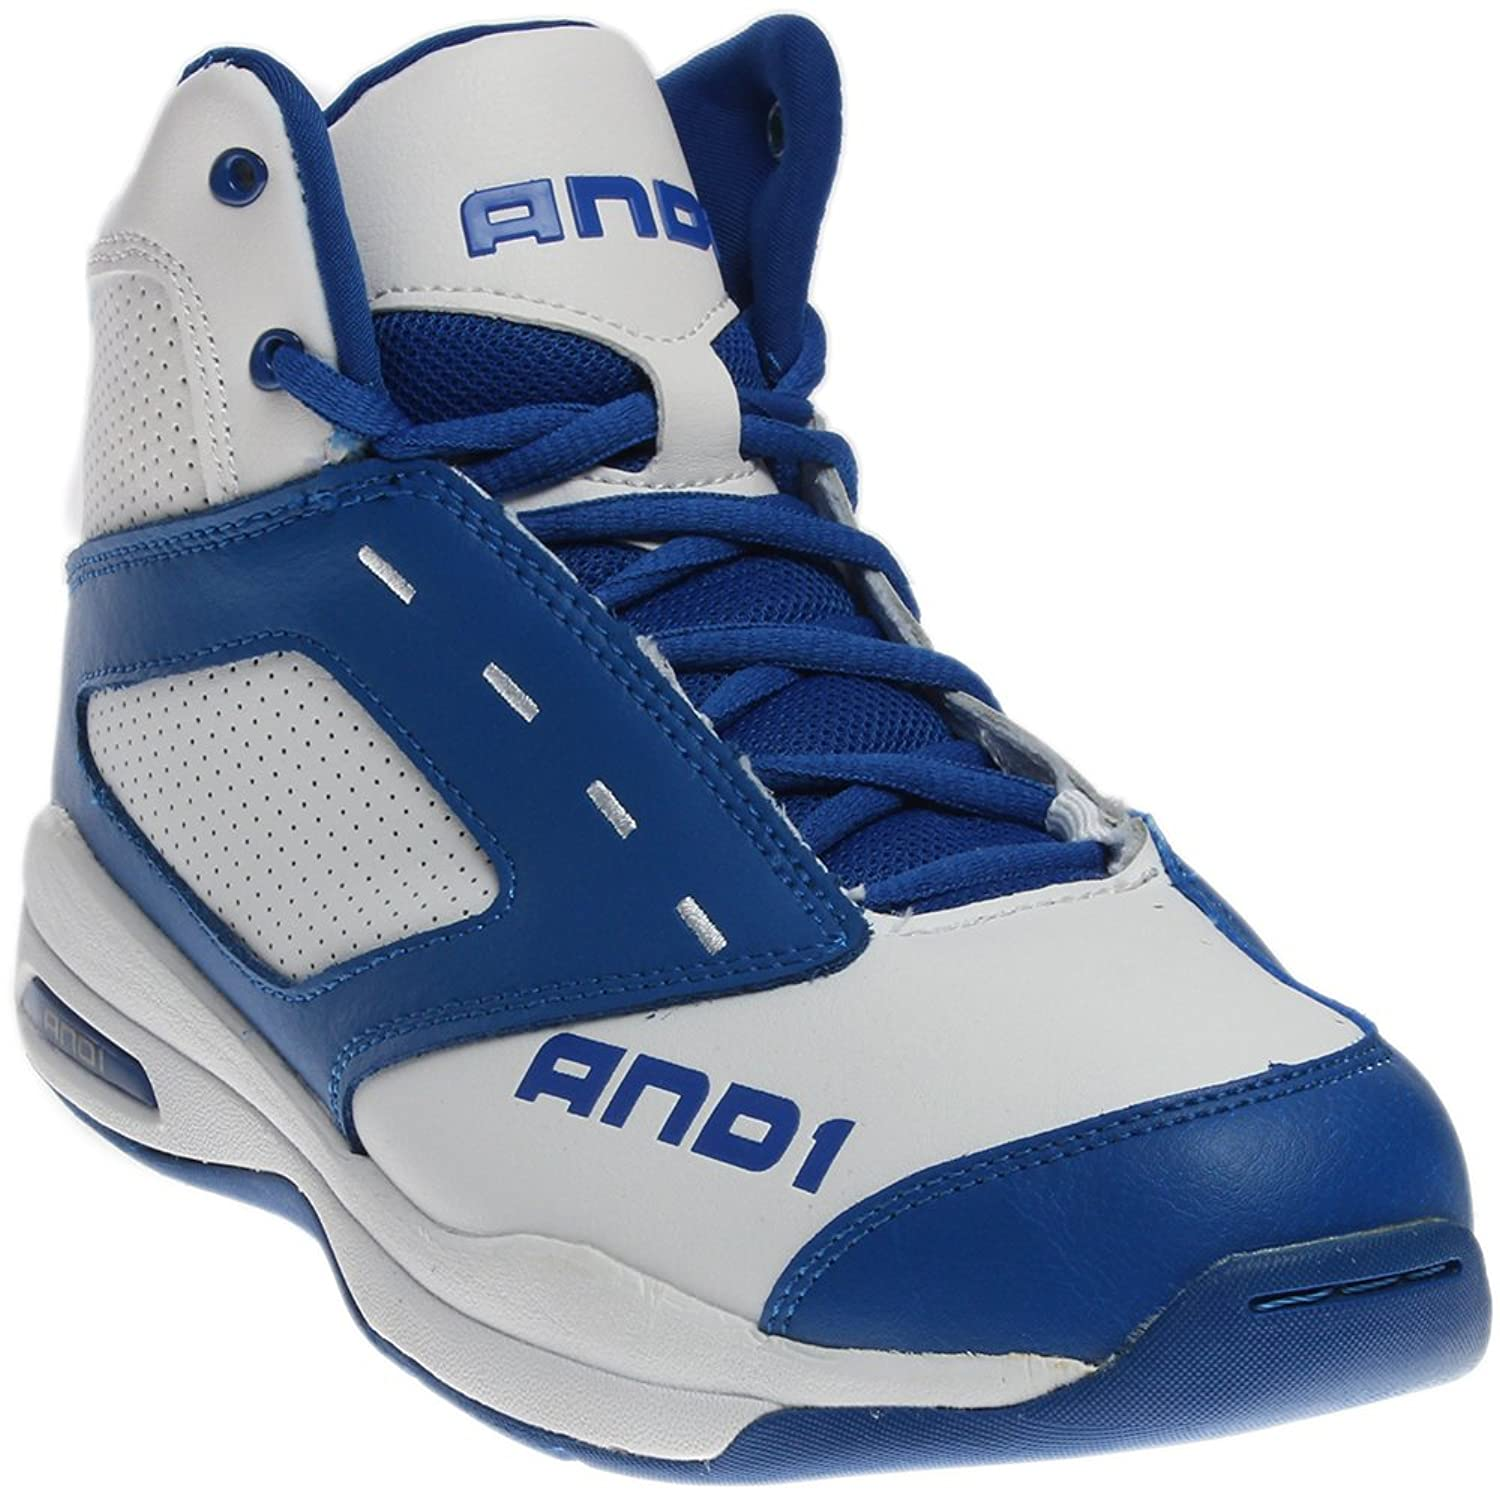 And 1 Typhoon D1090MWMW White Blue White Athletic Basketball Shoes B0125HD0NY Parent